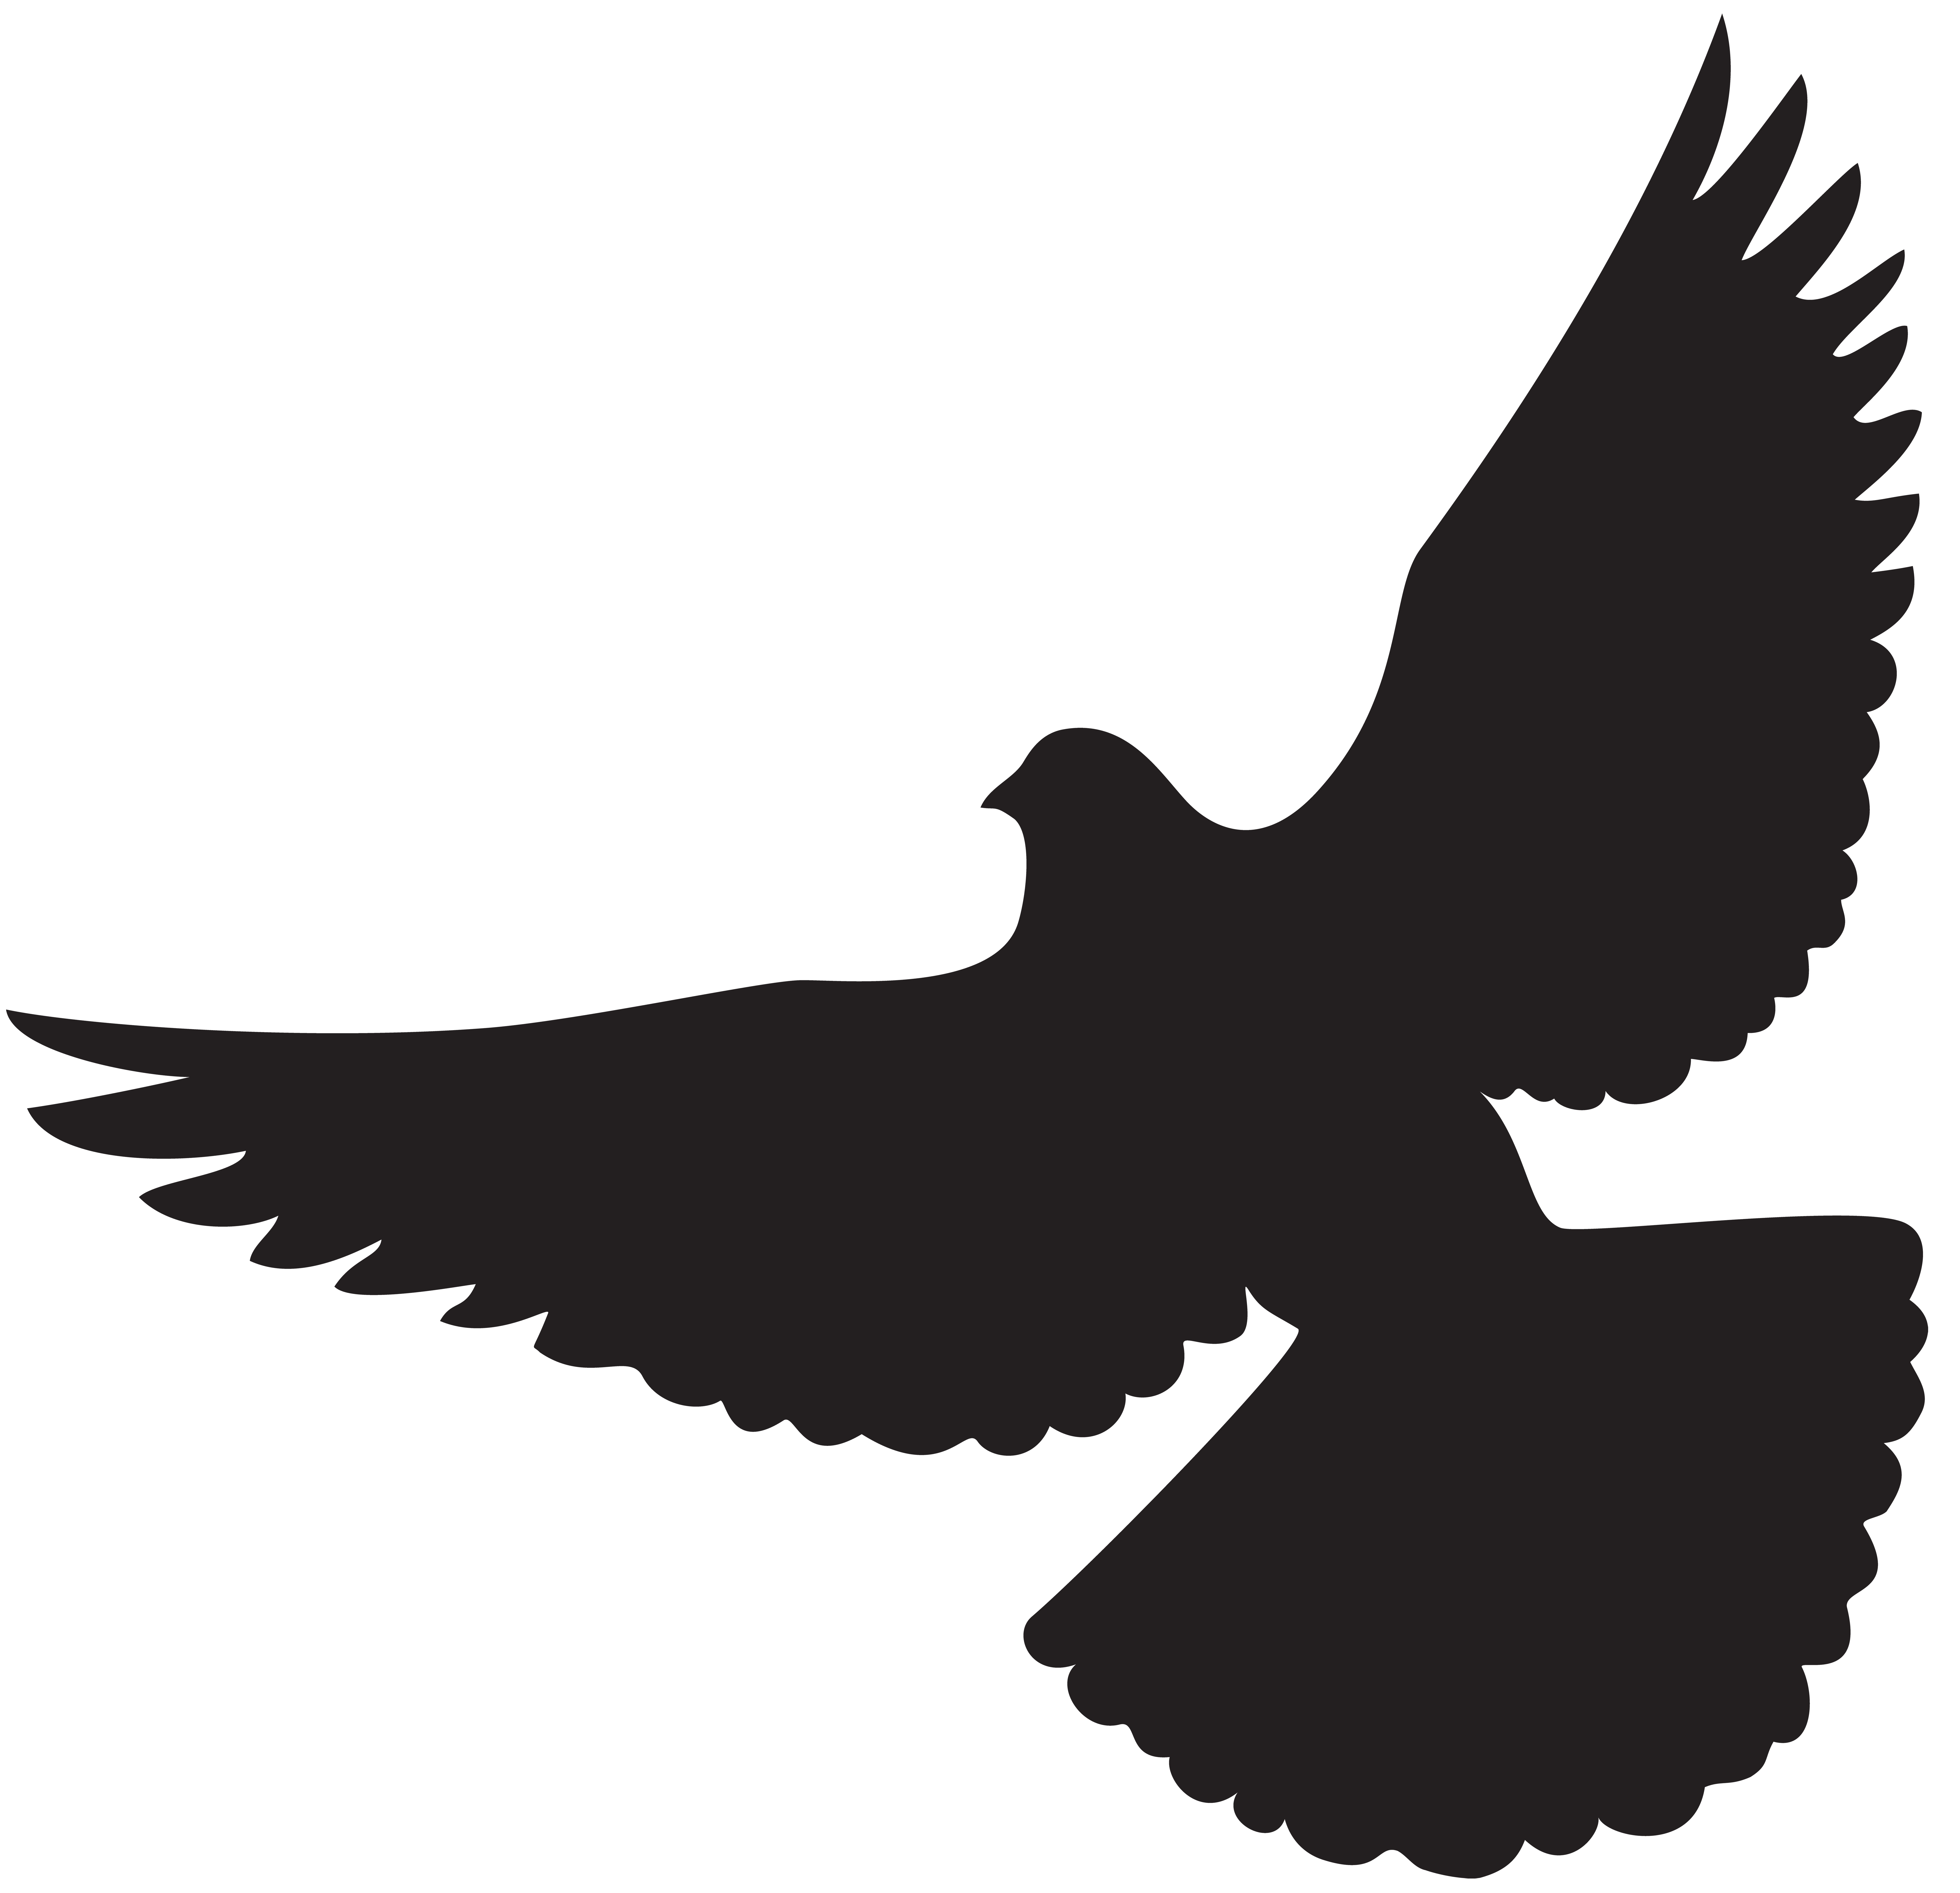 jpg royalty free library Silhouette png clip art. Gold clipart dove